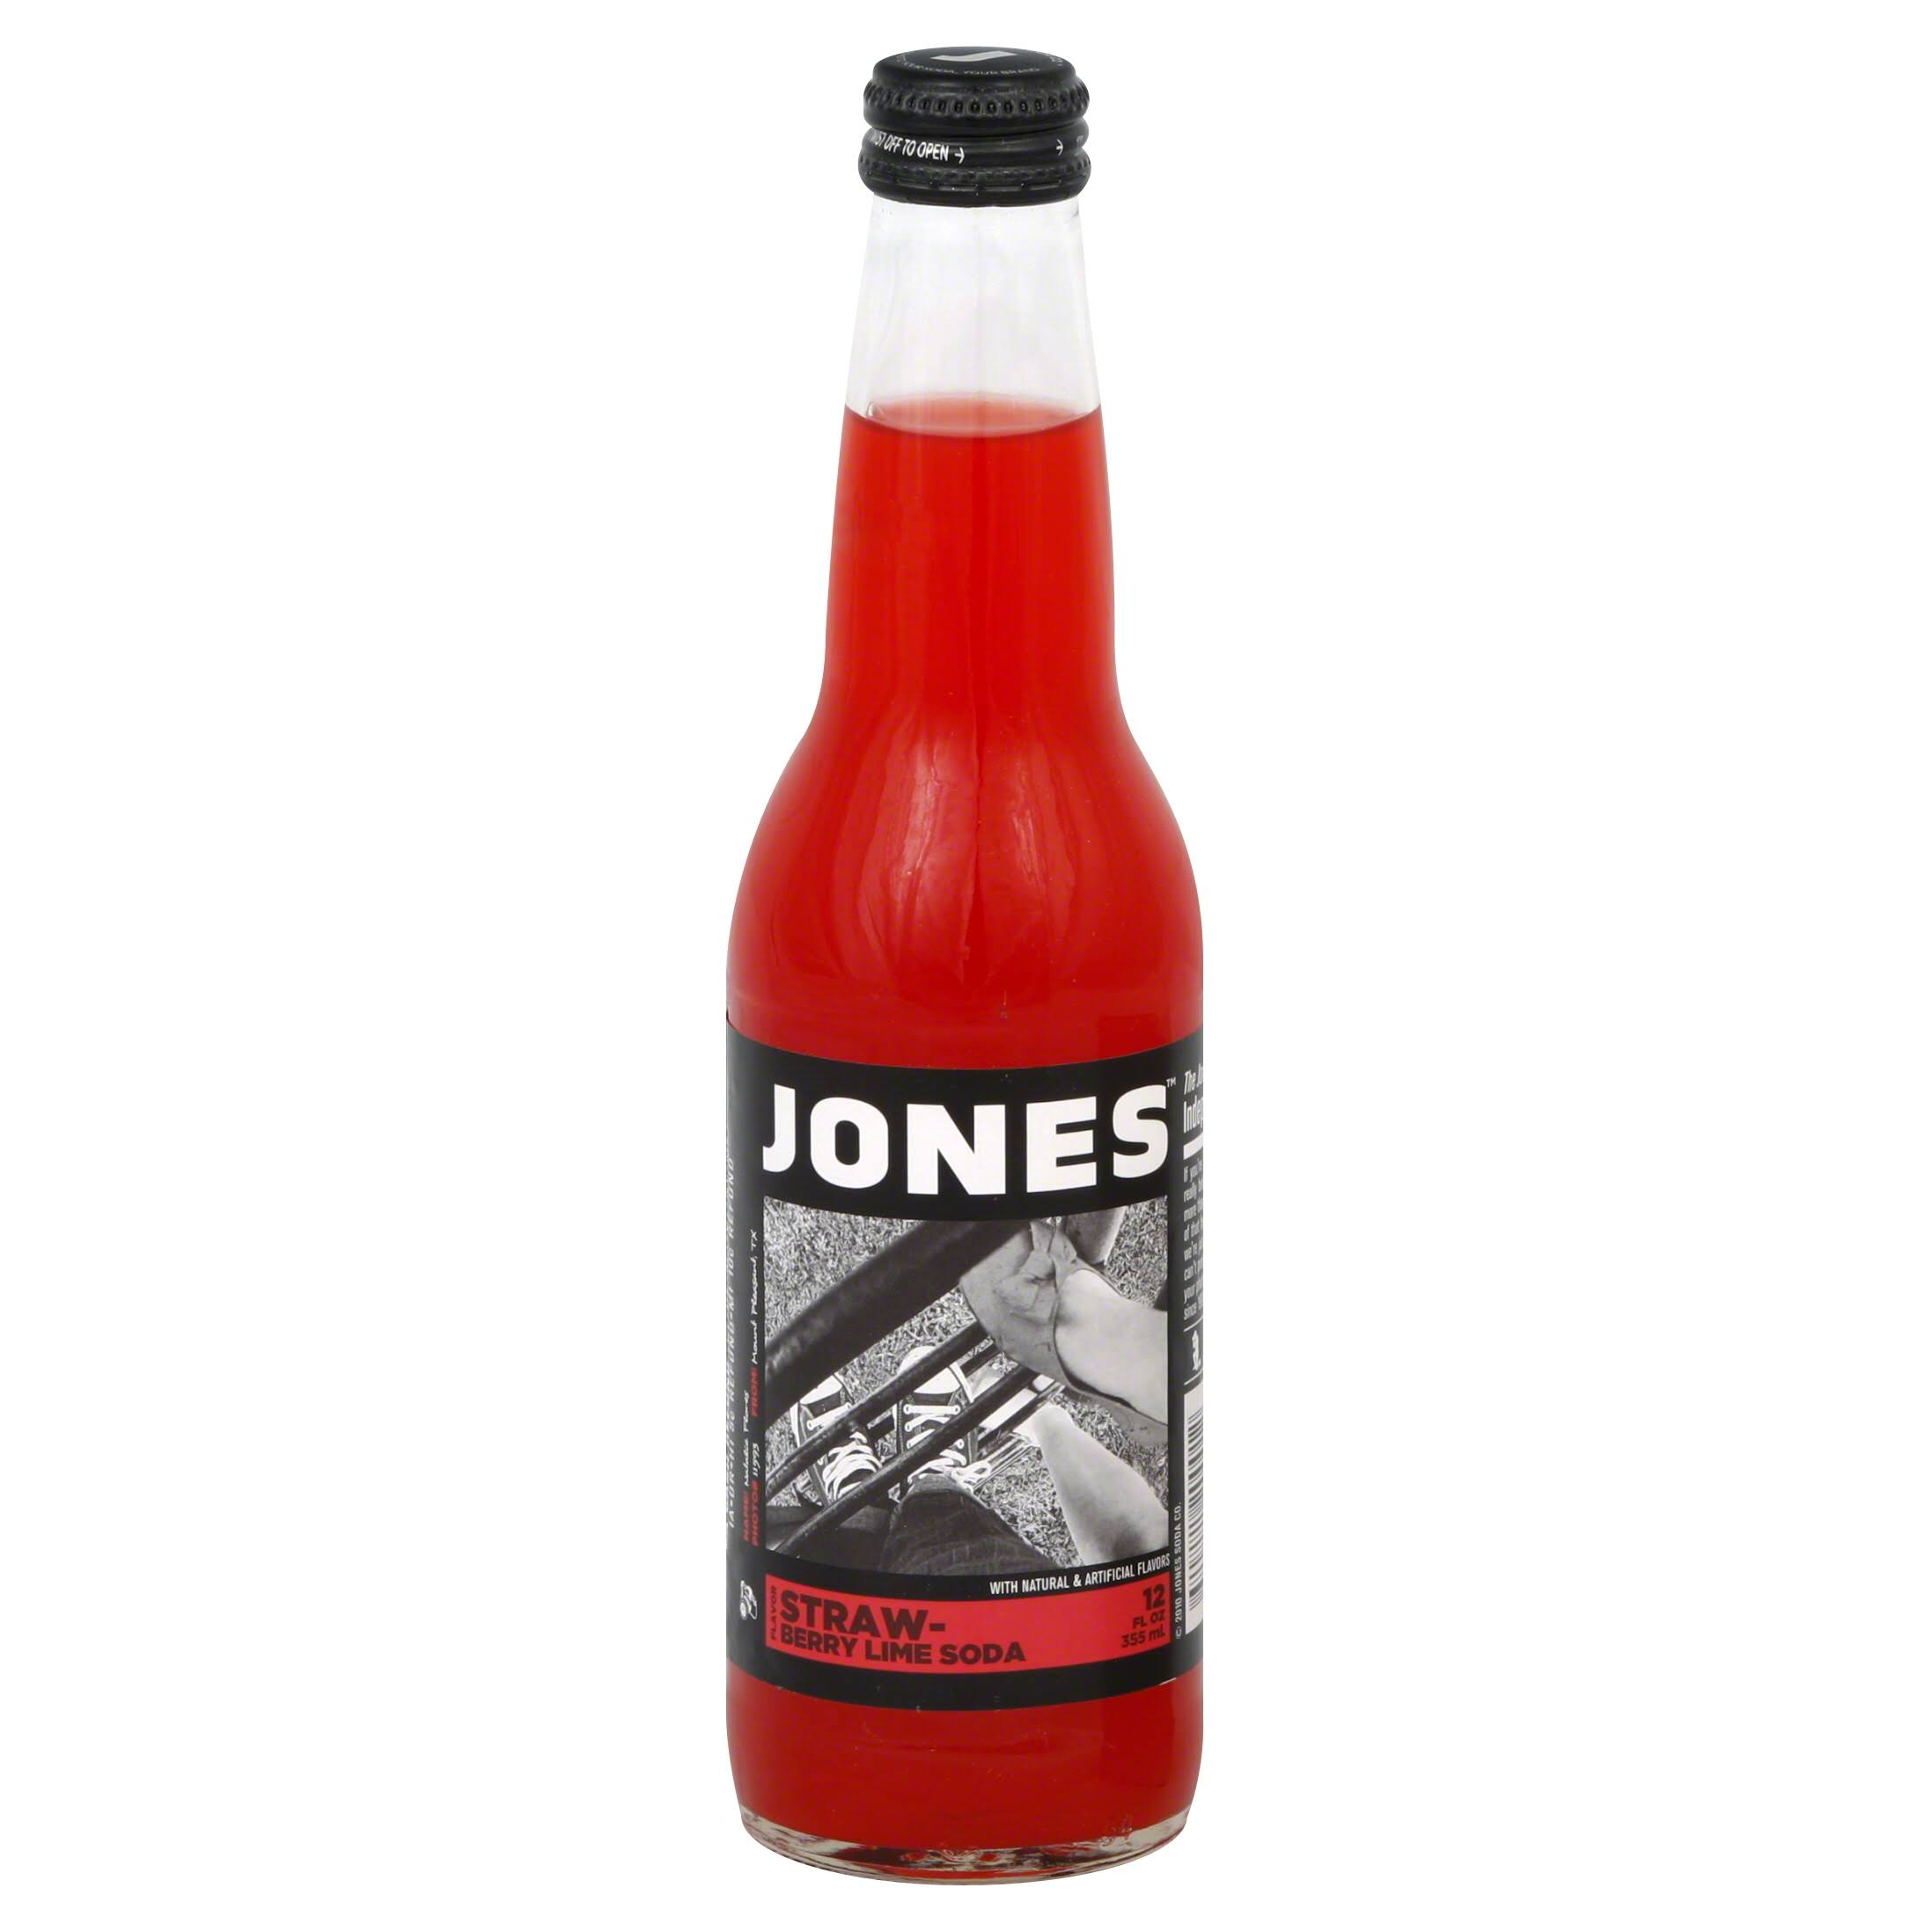 Jones Pure Cane Soda - Strawberry Lime, 354ml